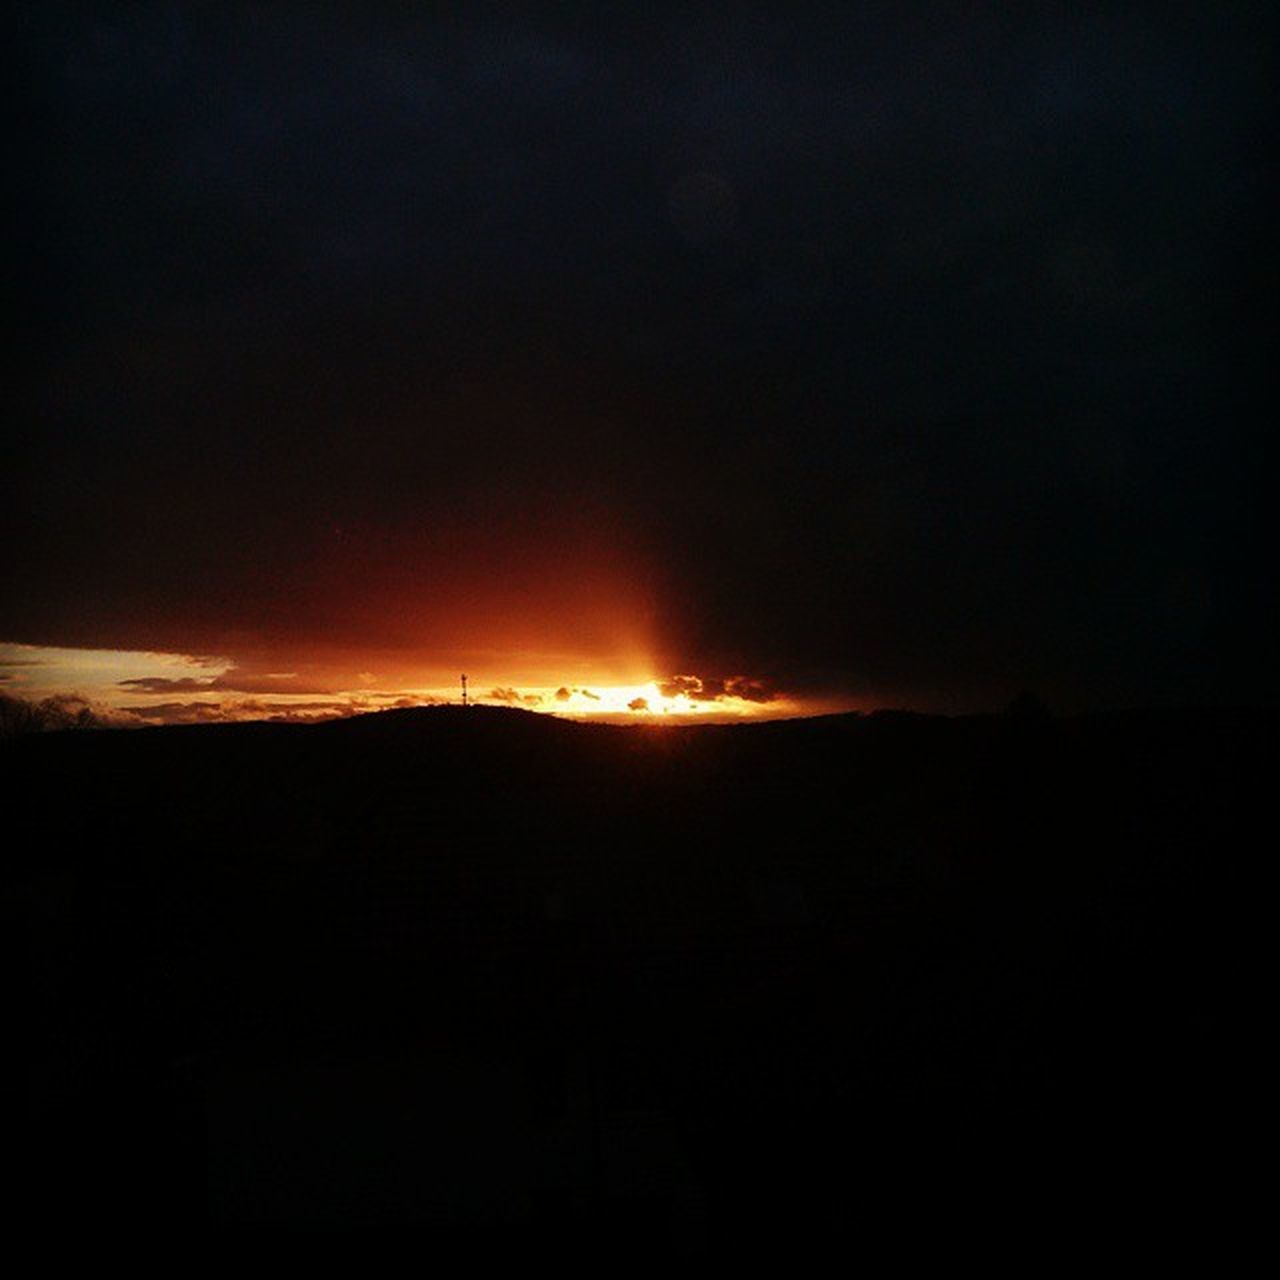 sunset, silhouette, nature, outdoors, night, no people, beauty in nature, scenics, sky, landscape, forest fire